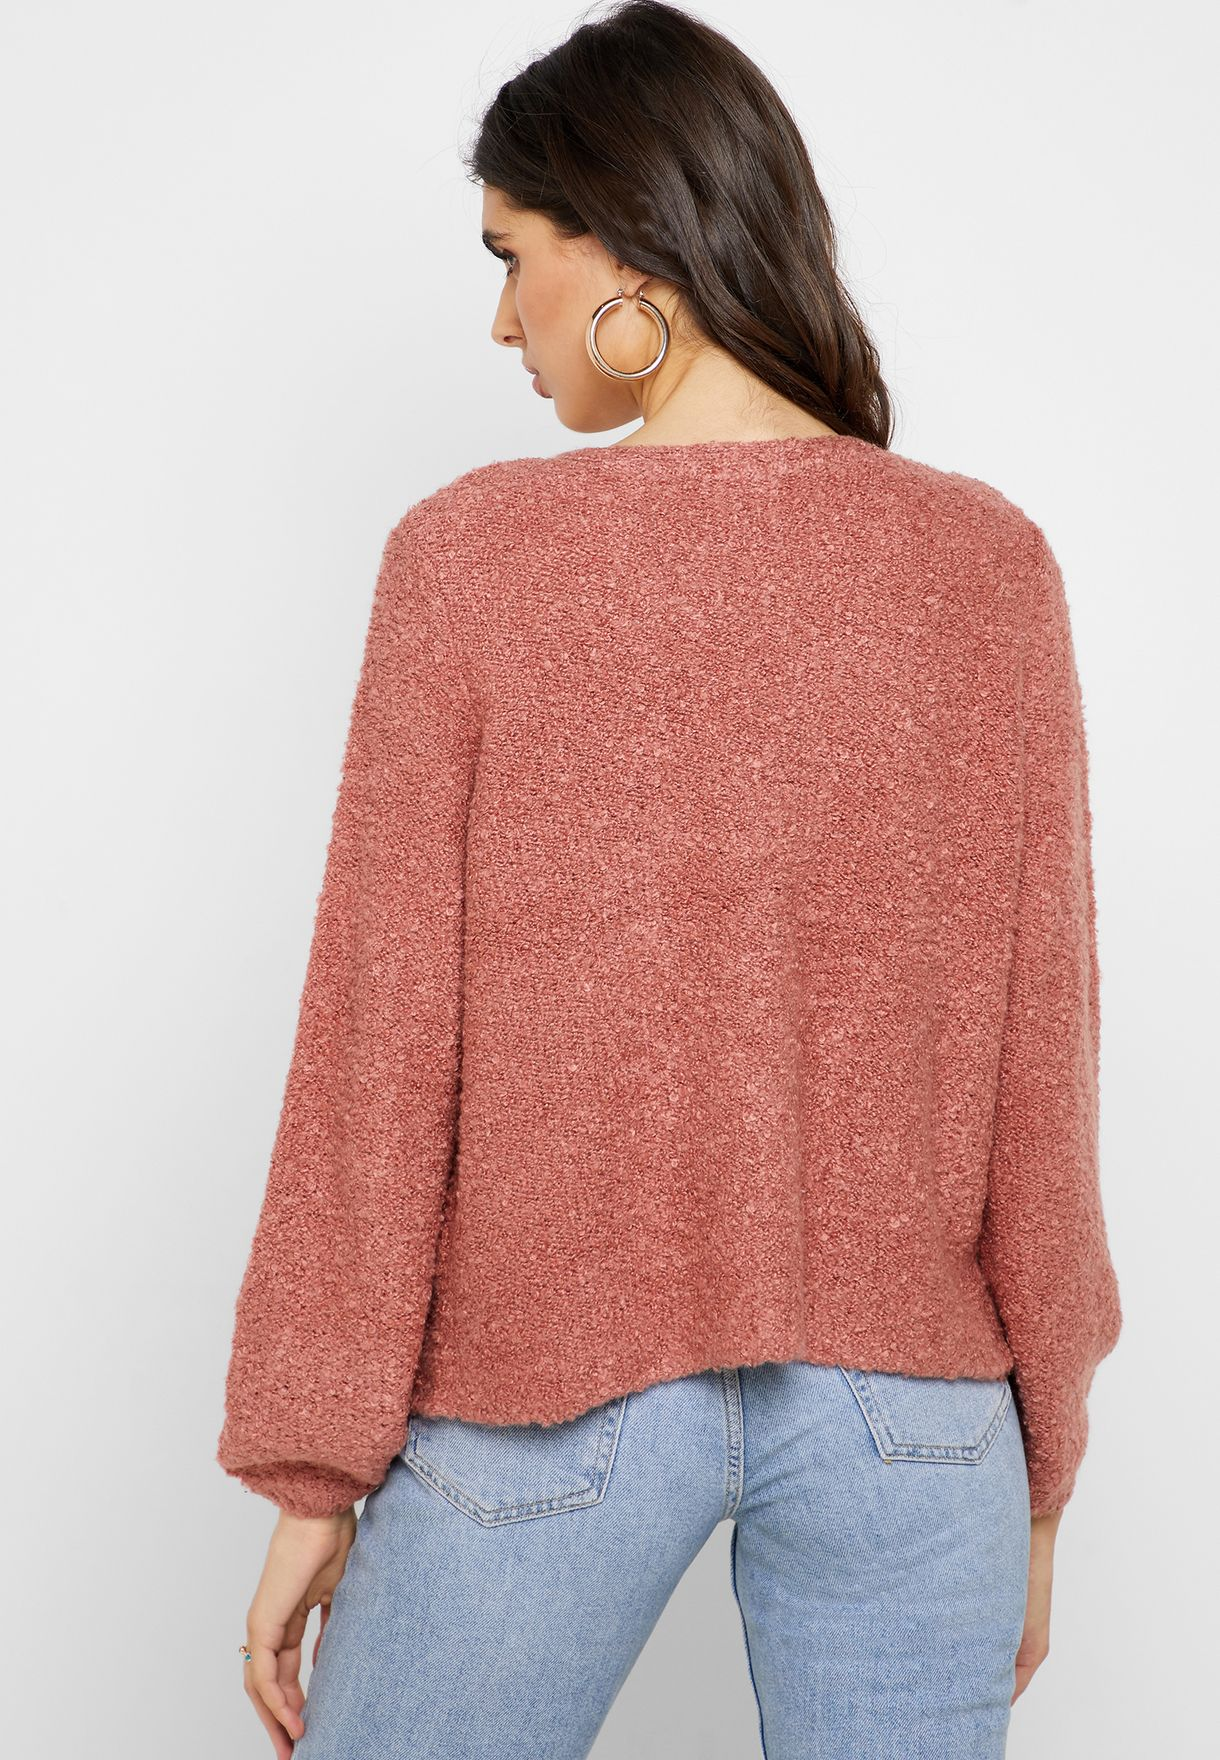 Knitted Puffed Sleeve Cardigan